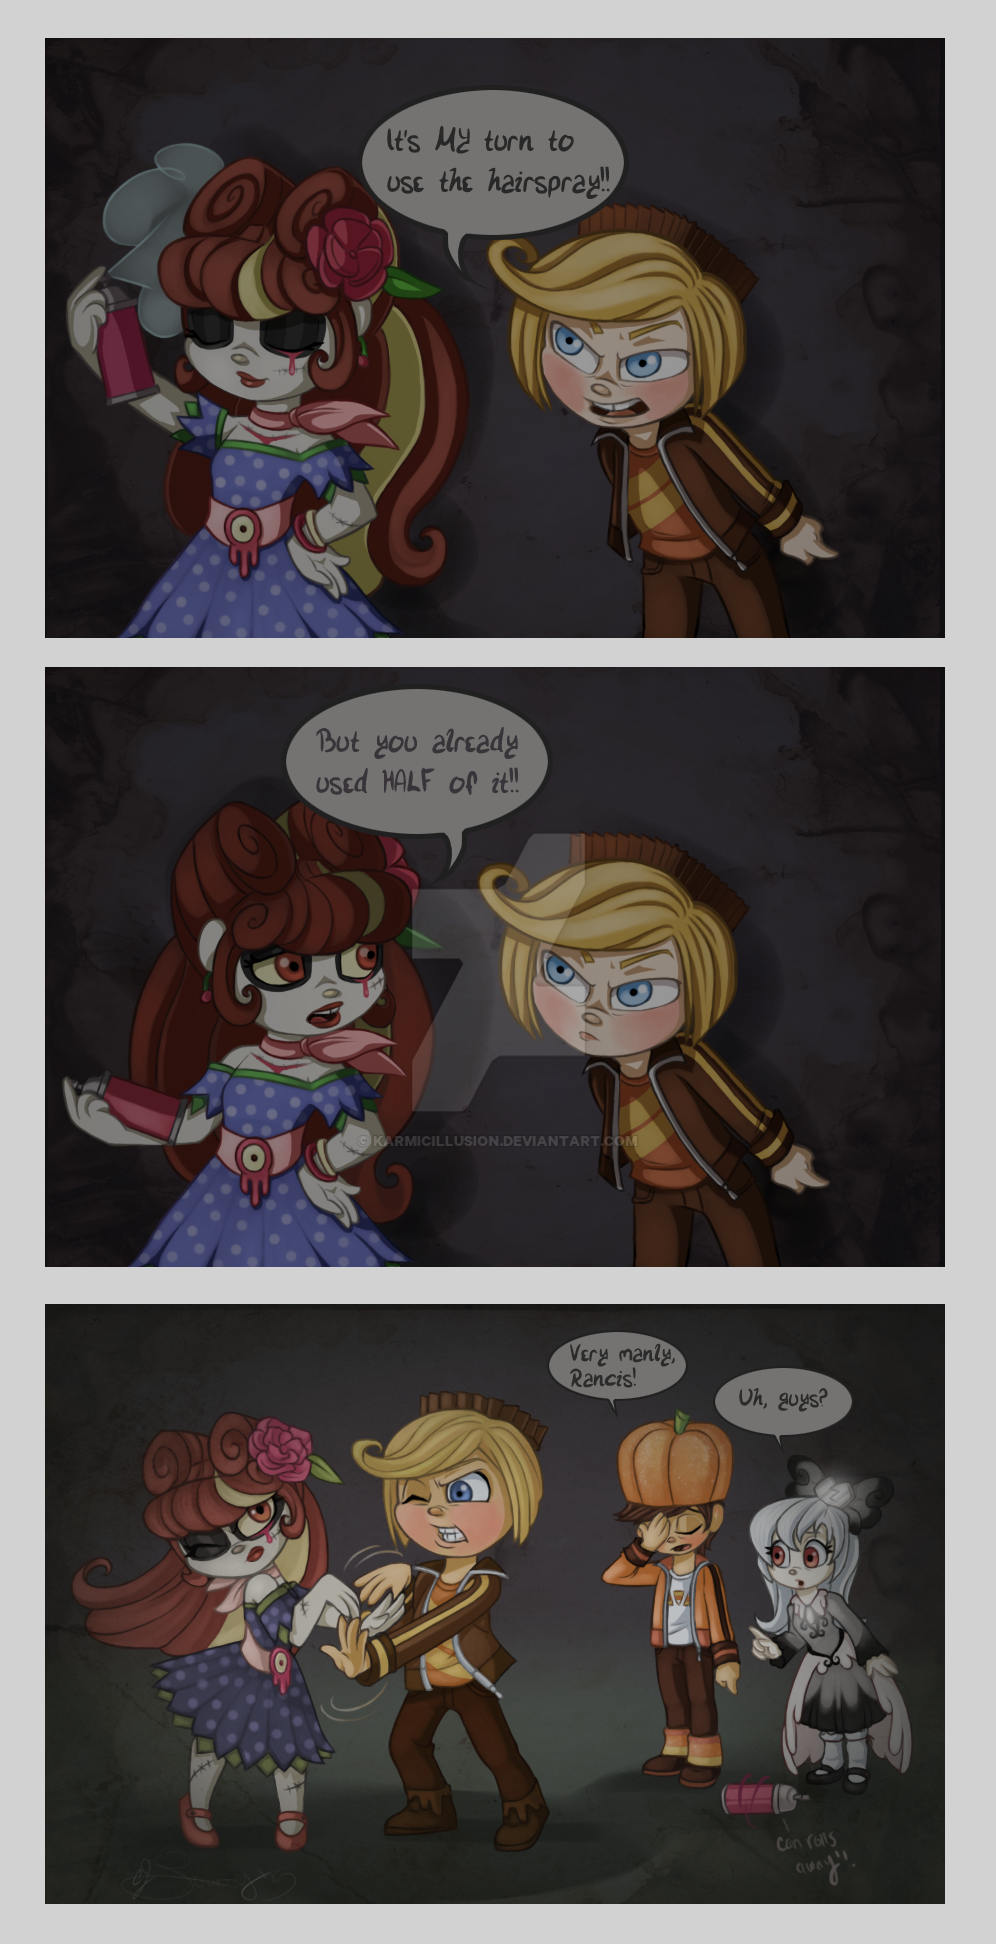 hairspray sissy fight by karmicillusion on deviantart